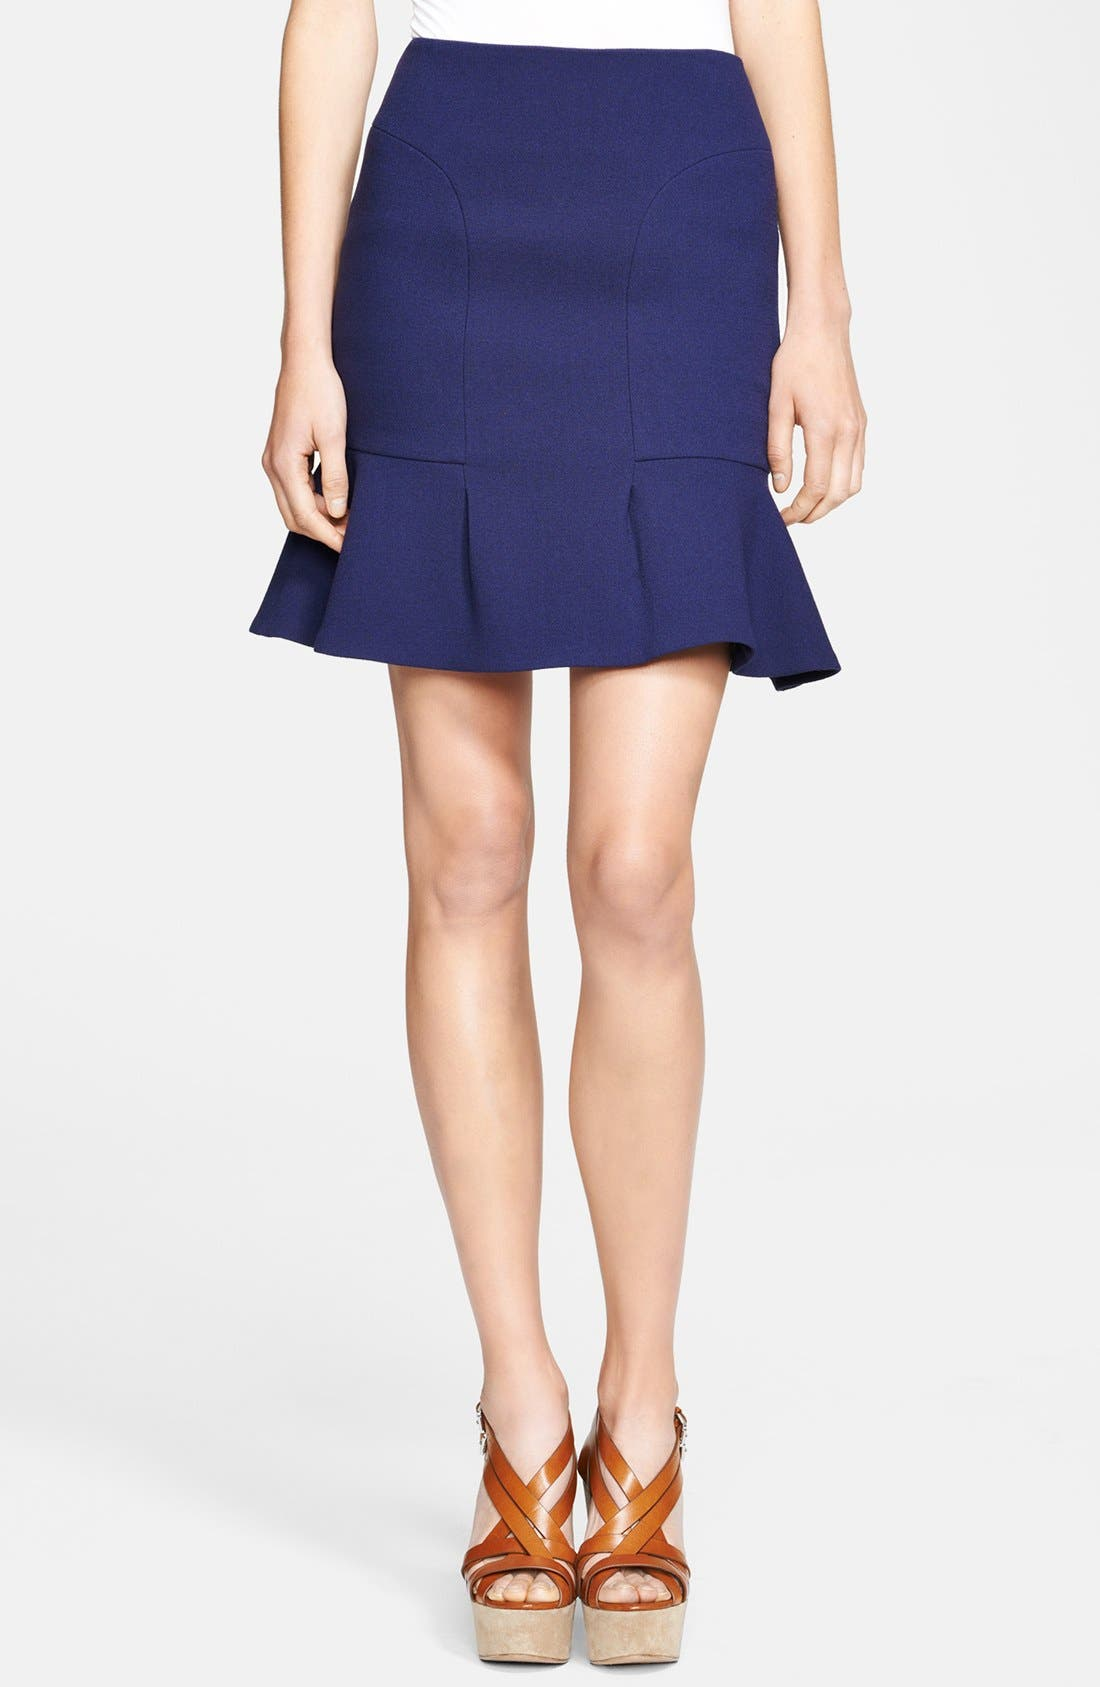 Alternate Image 1 Selected - Michael Kors Bouclé Stretch Wool Skirt